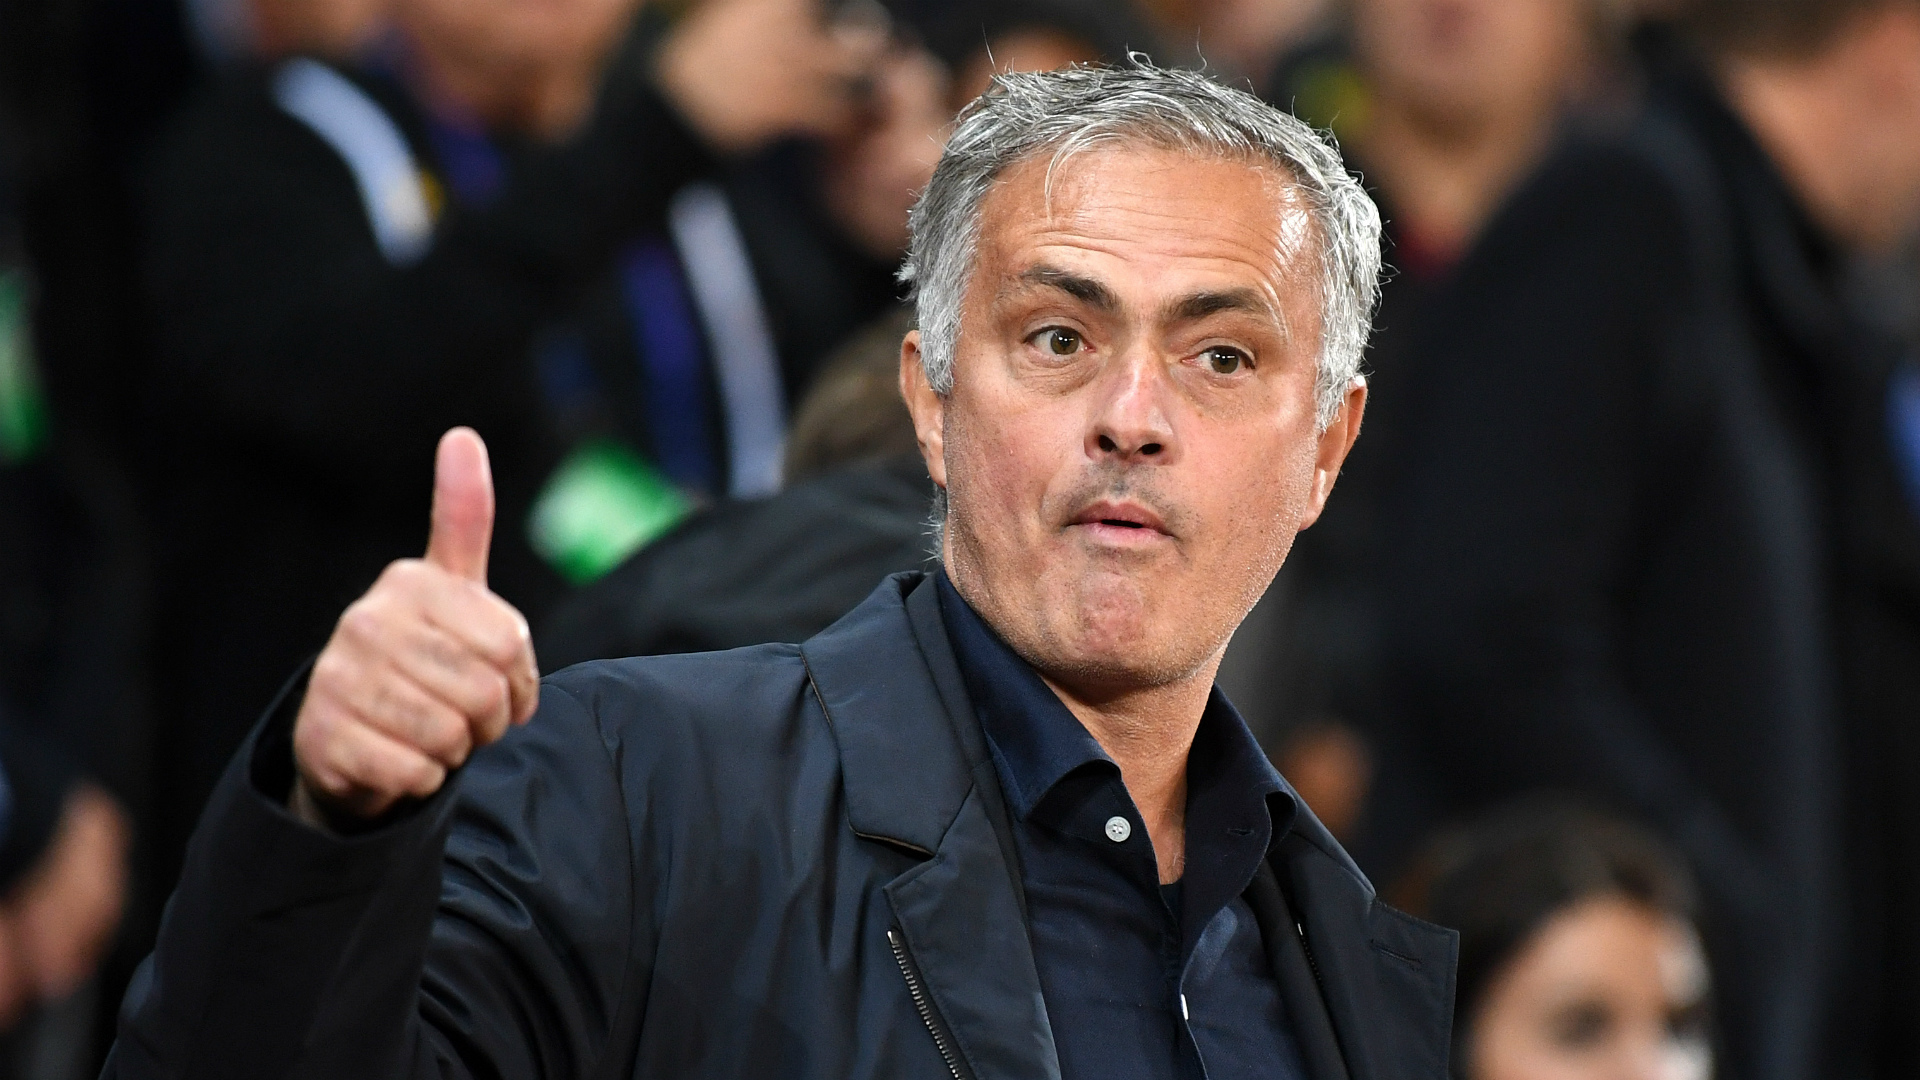 Manchester United manager Jose Mourinho rules out move for Zlatan Ibrahimovic